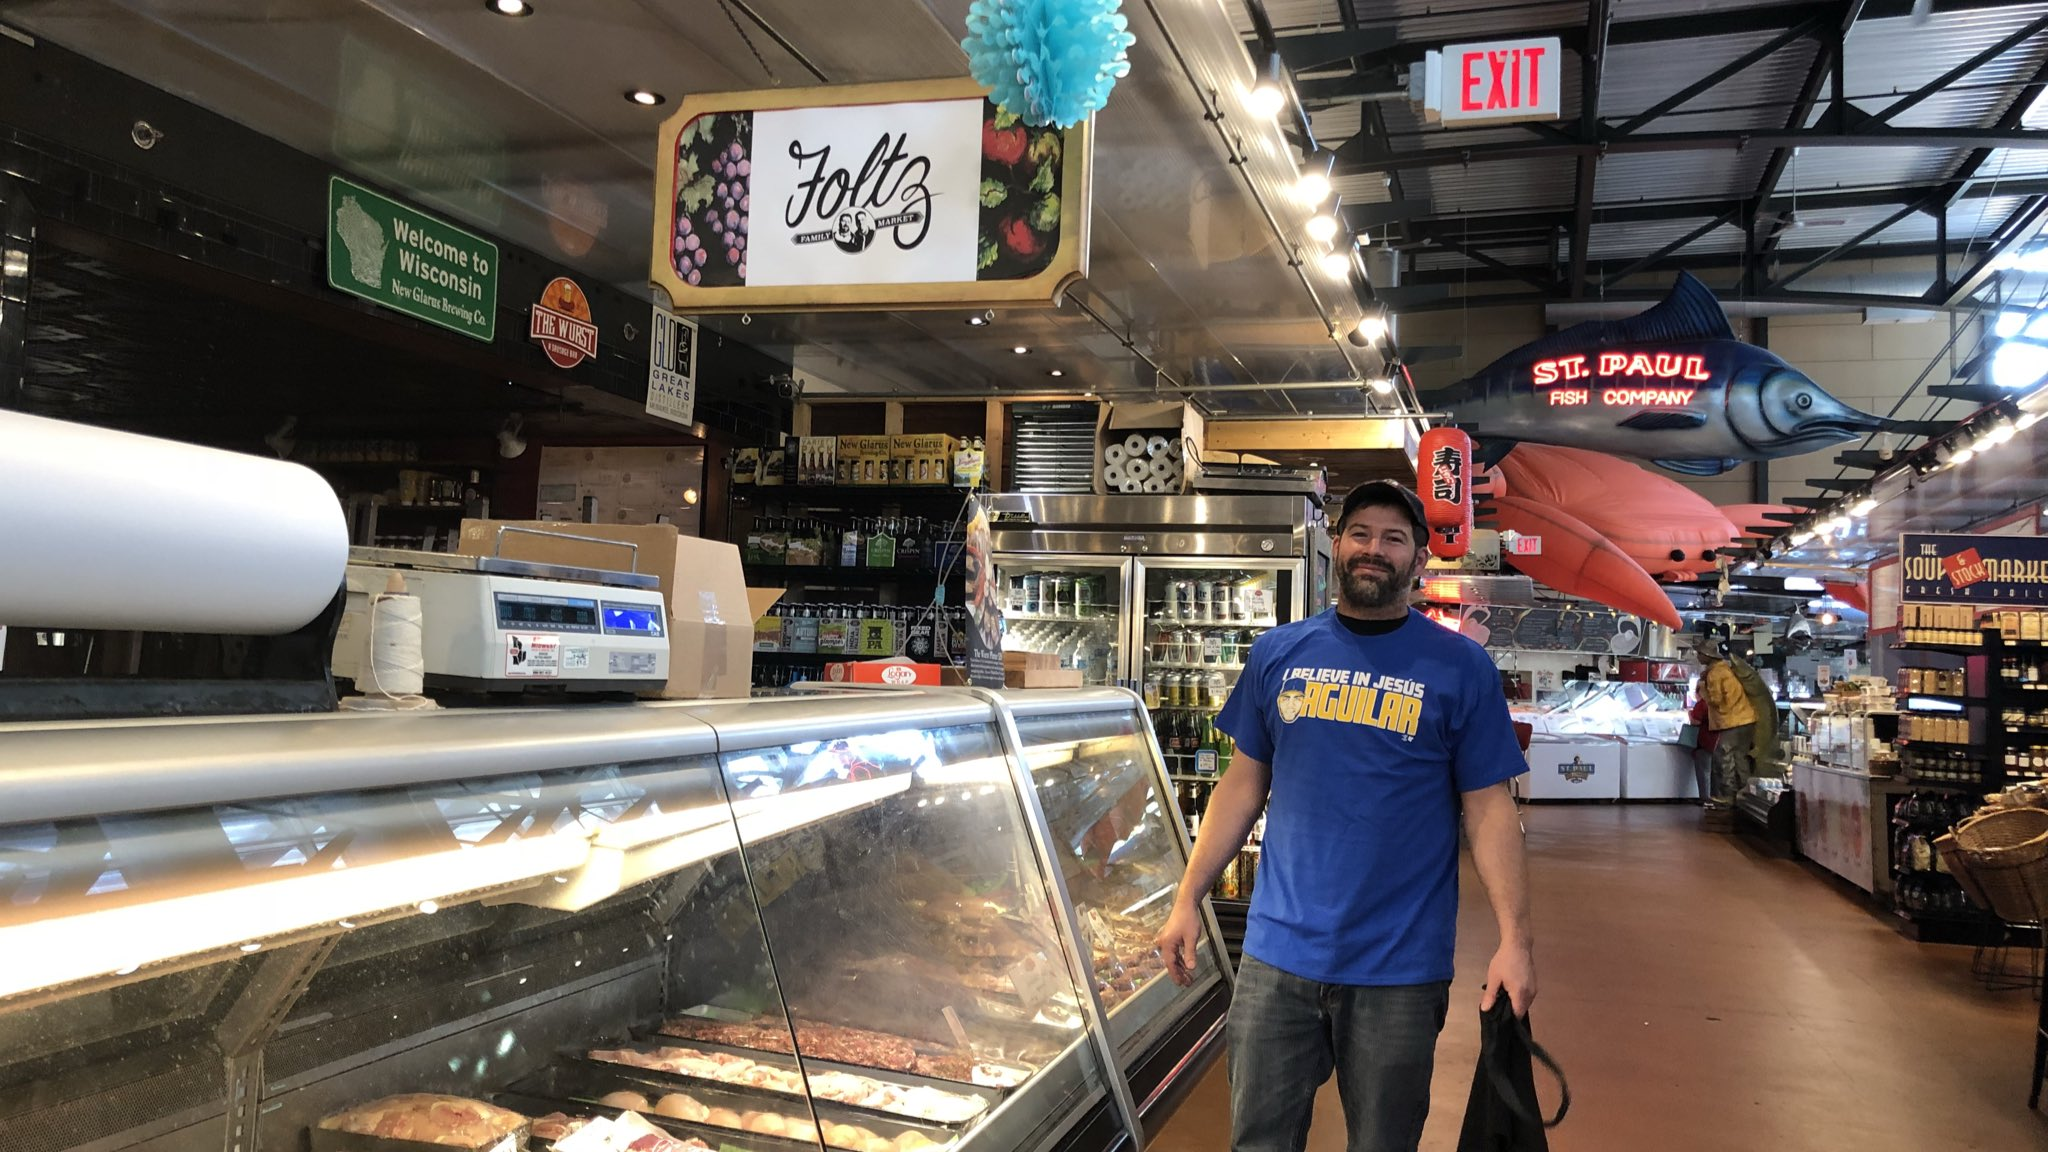 Great to see the support @MKEPublicMarket! #WeBelieveinJesús   https://t.co/QB8es3aQOg https://t.co/wwtsyde4c1